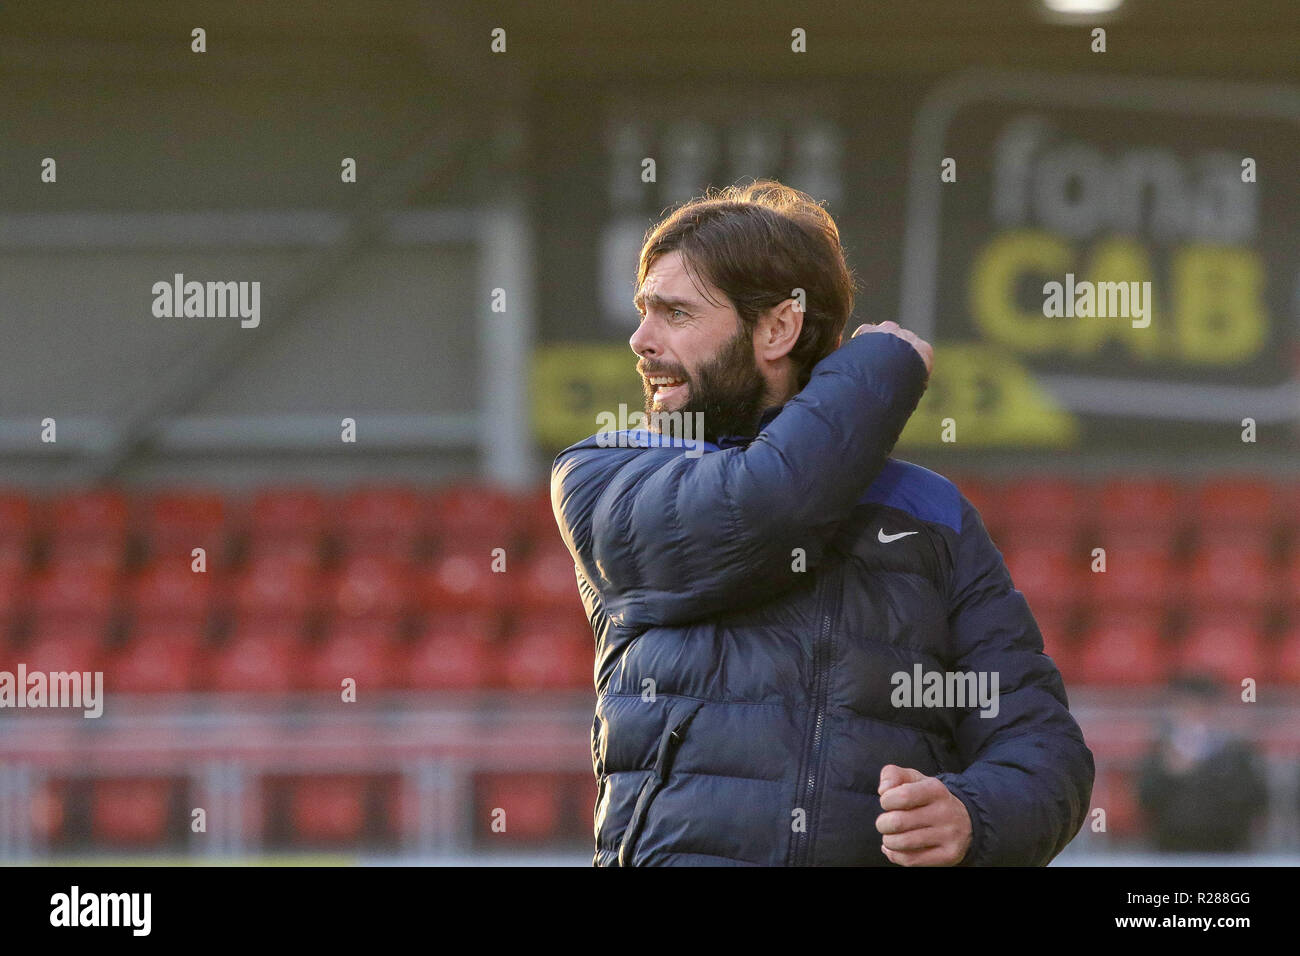 Seaview, Belfast, Northern Ireland. 17 November 2018. Danske Bank Premiership - Crusaders (red/black) v Glenavon (blue). Action from today's game at Seaview. Unhappy - Glenavon boss Gary Hamilton. Credit: CAZIMB/Alamy Live News. - Stock Image